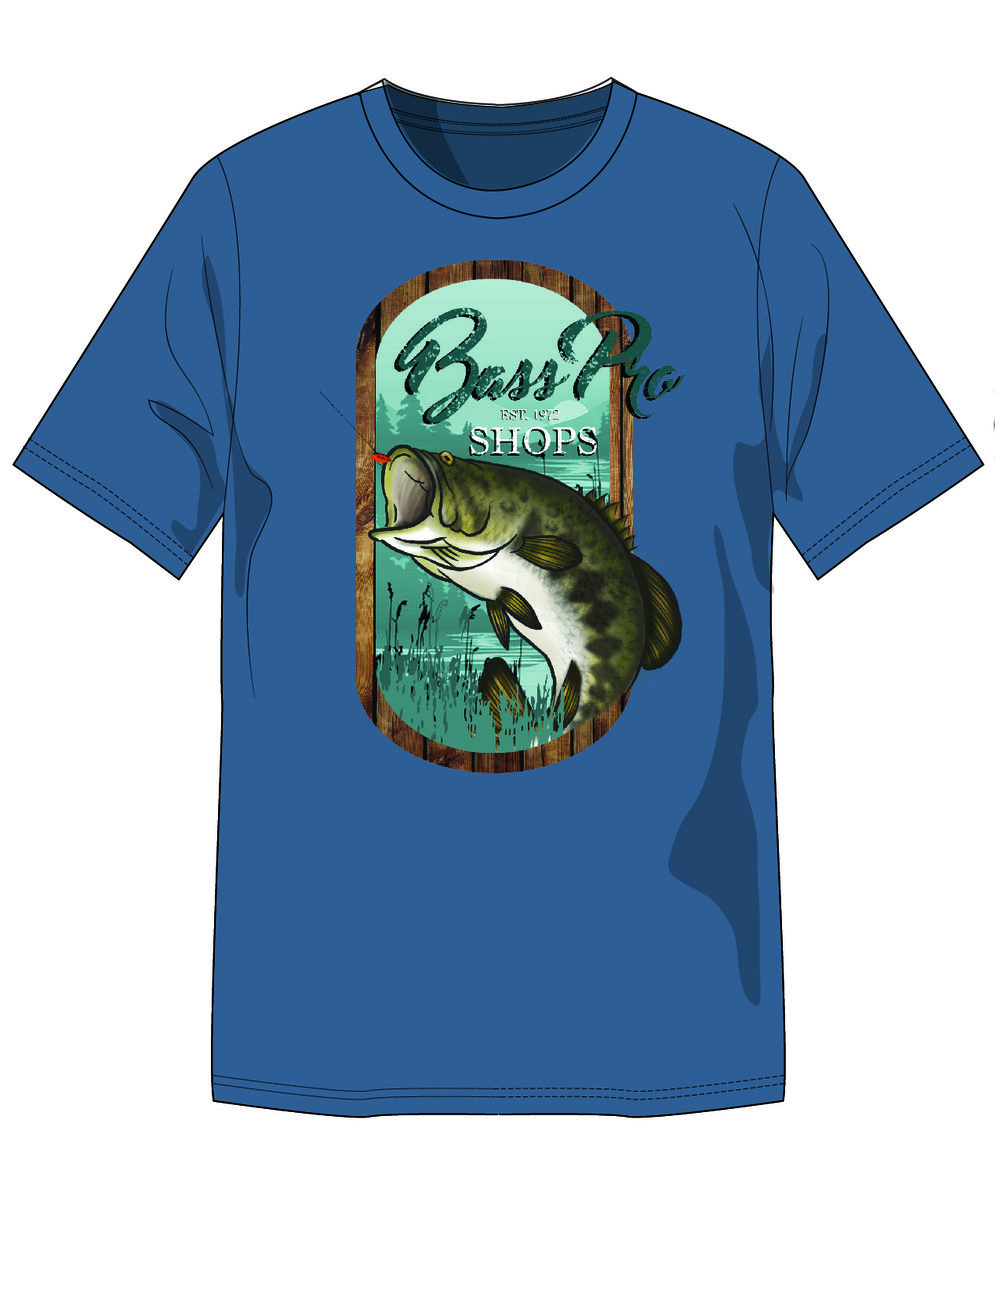 FISH-Mens tee layout-01.jpg